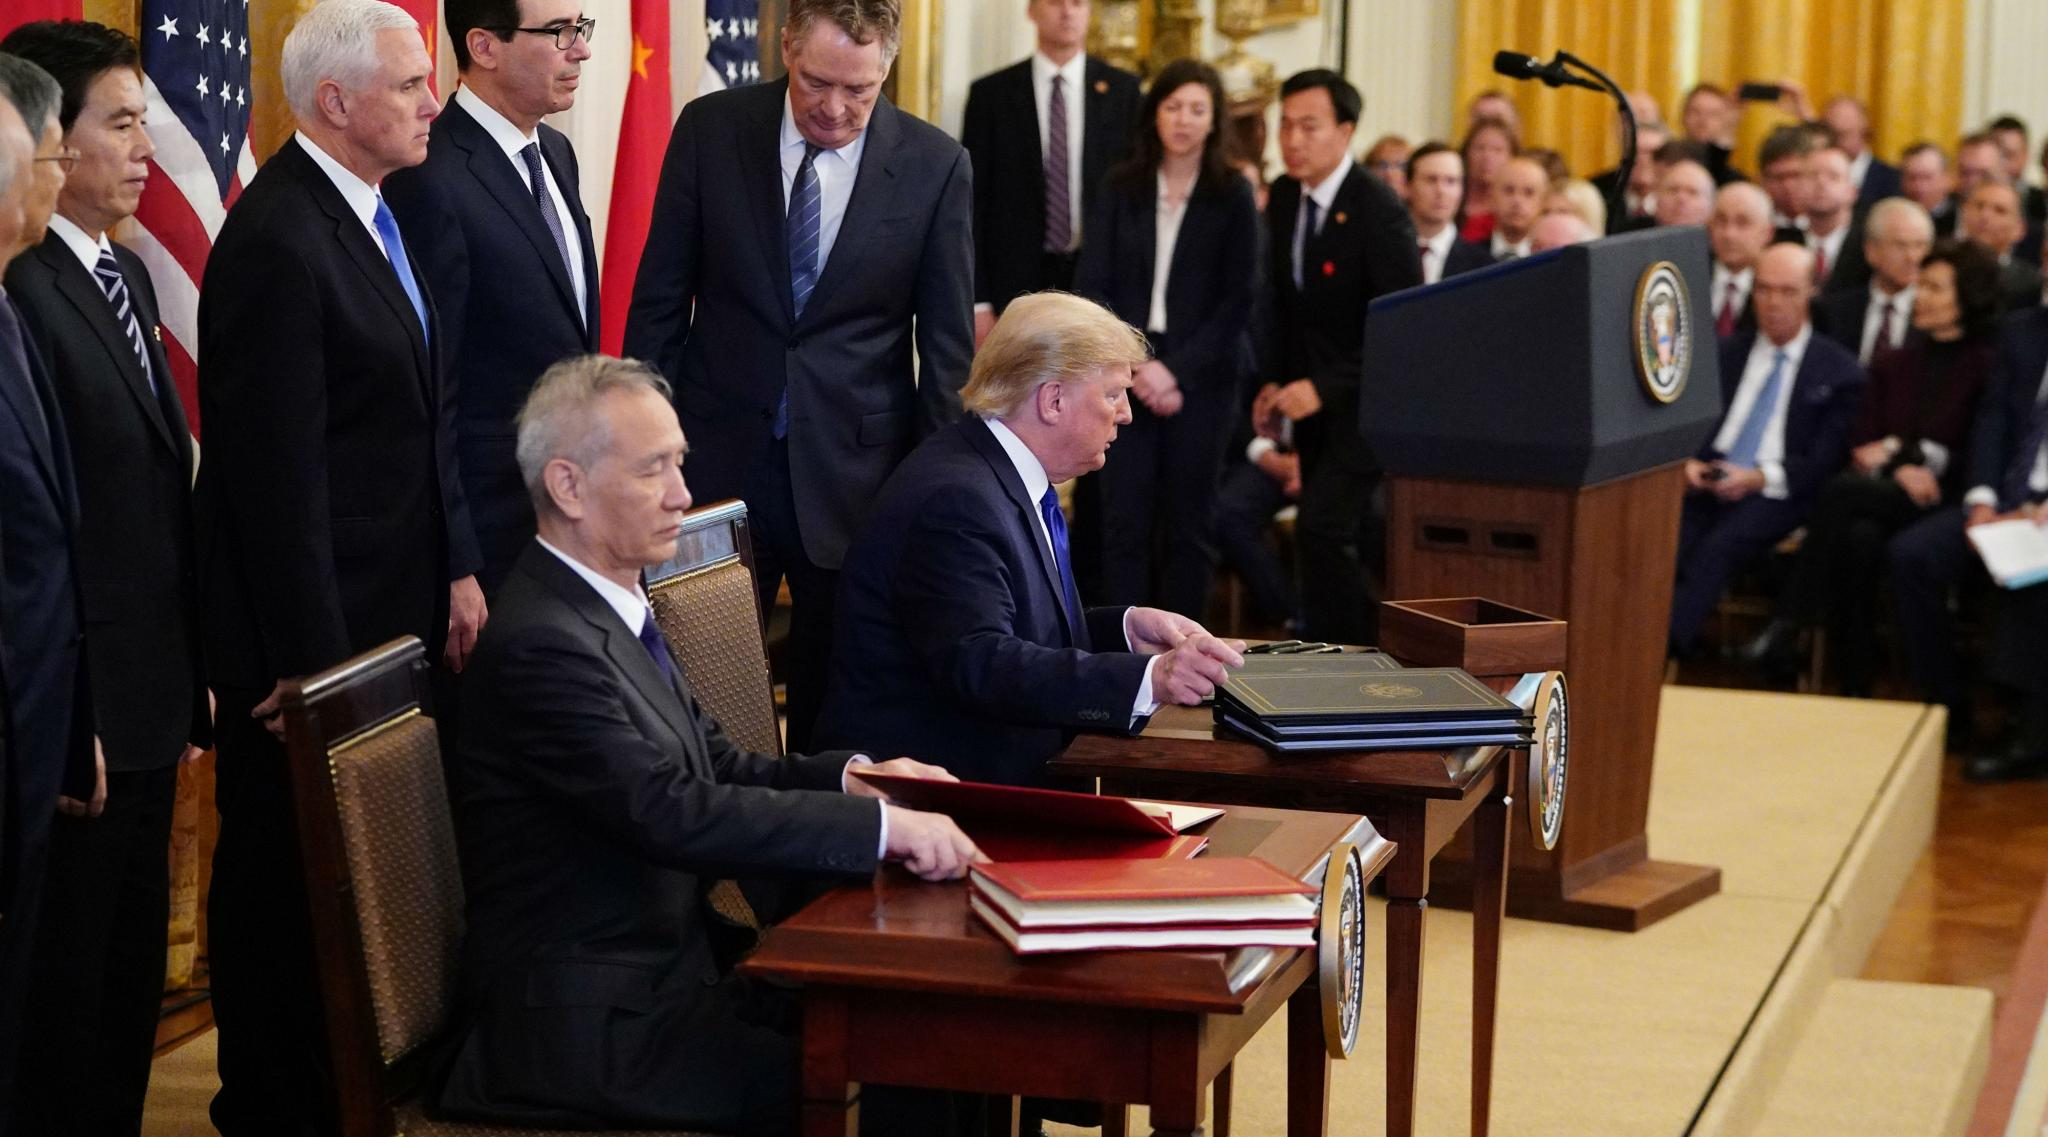 US-China Trade Deal: Donald Trump, Chinese Vice Premier Liu He Sign 'Phase One' of Deal